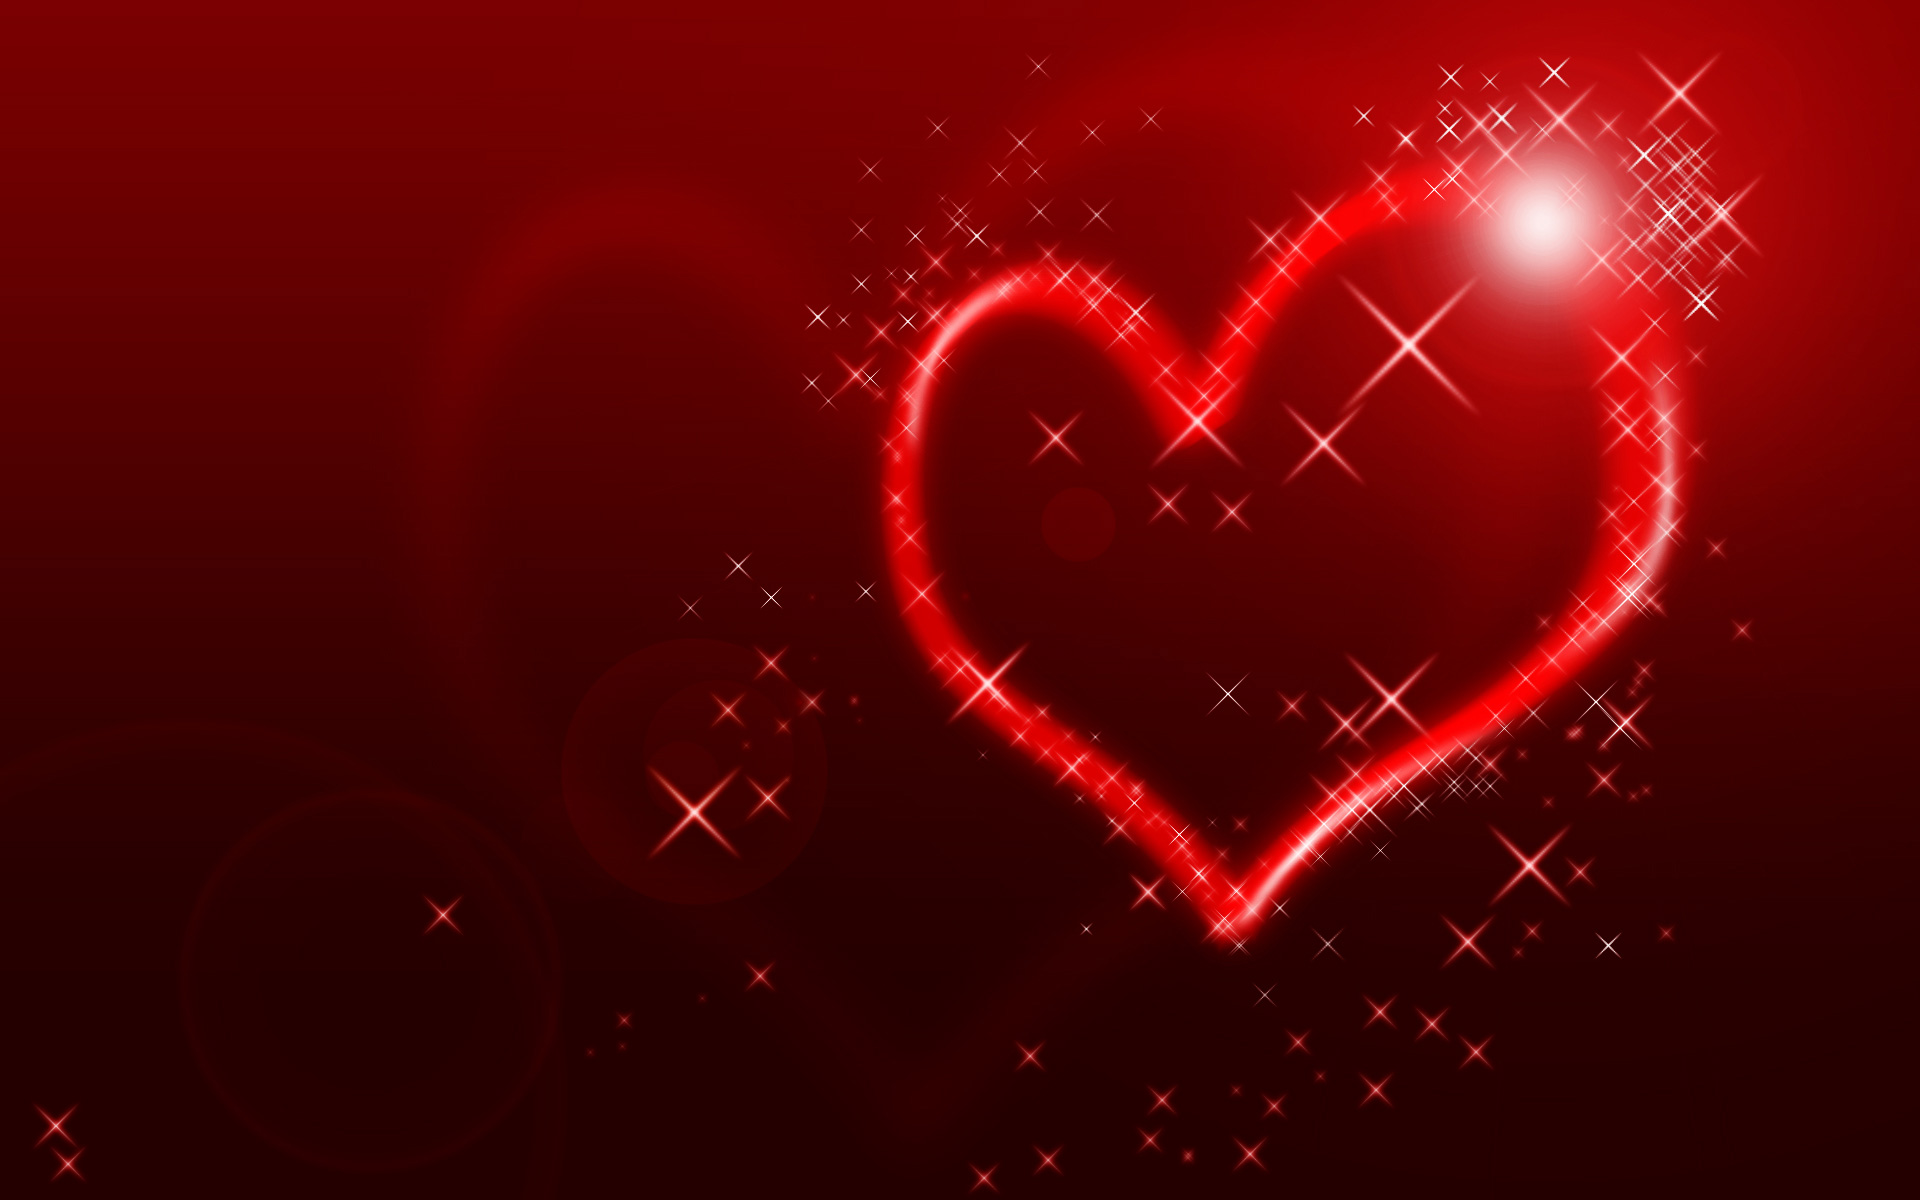 Love Wallpapers Editing : create an abstract Valentine background with hearts ...